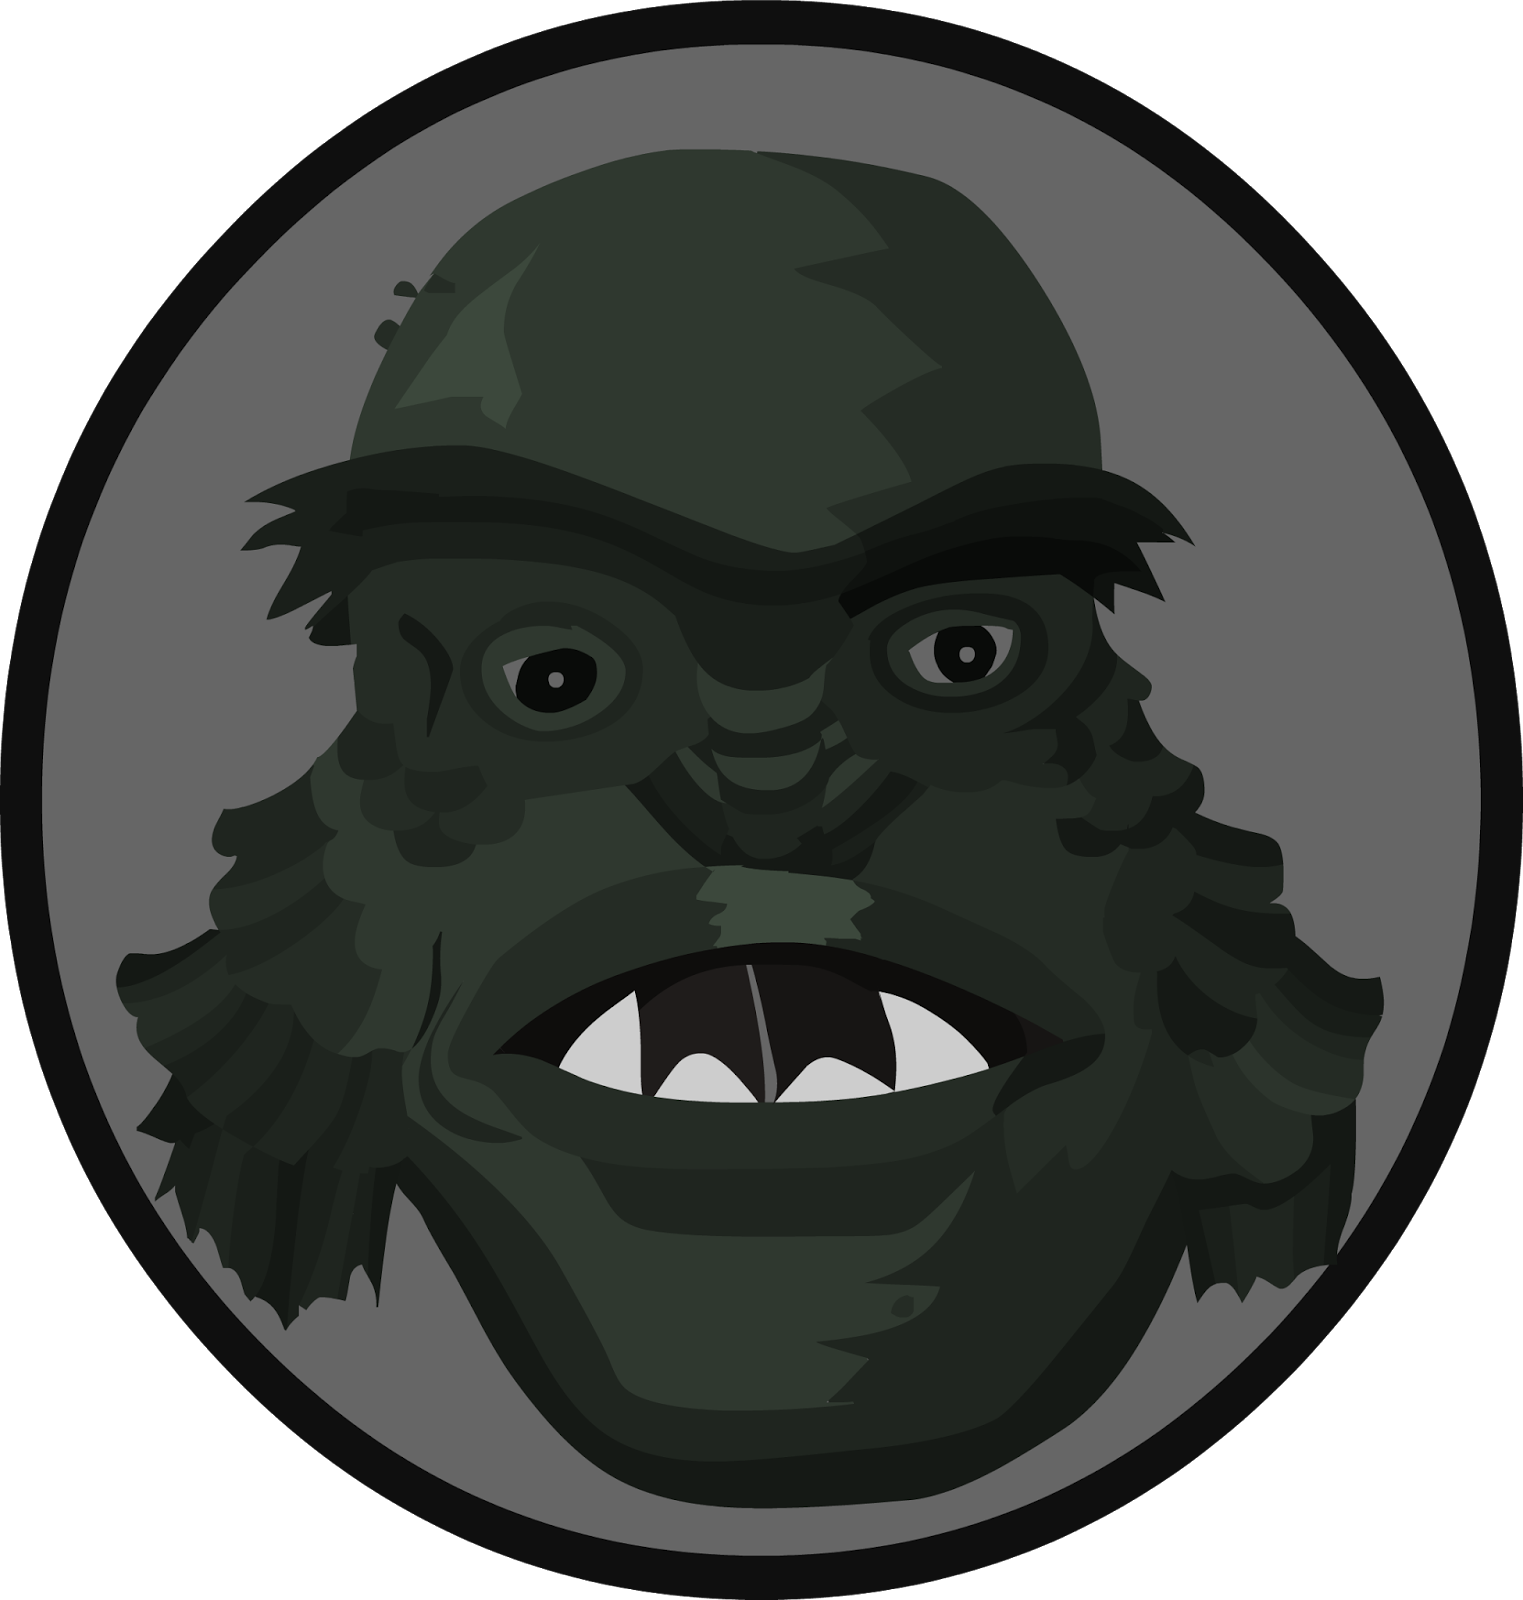 clip art royalty free Things to do in. Ape clipart gorilla mask